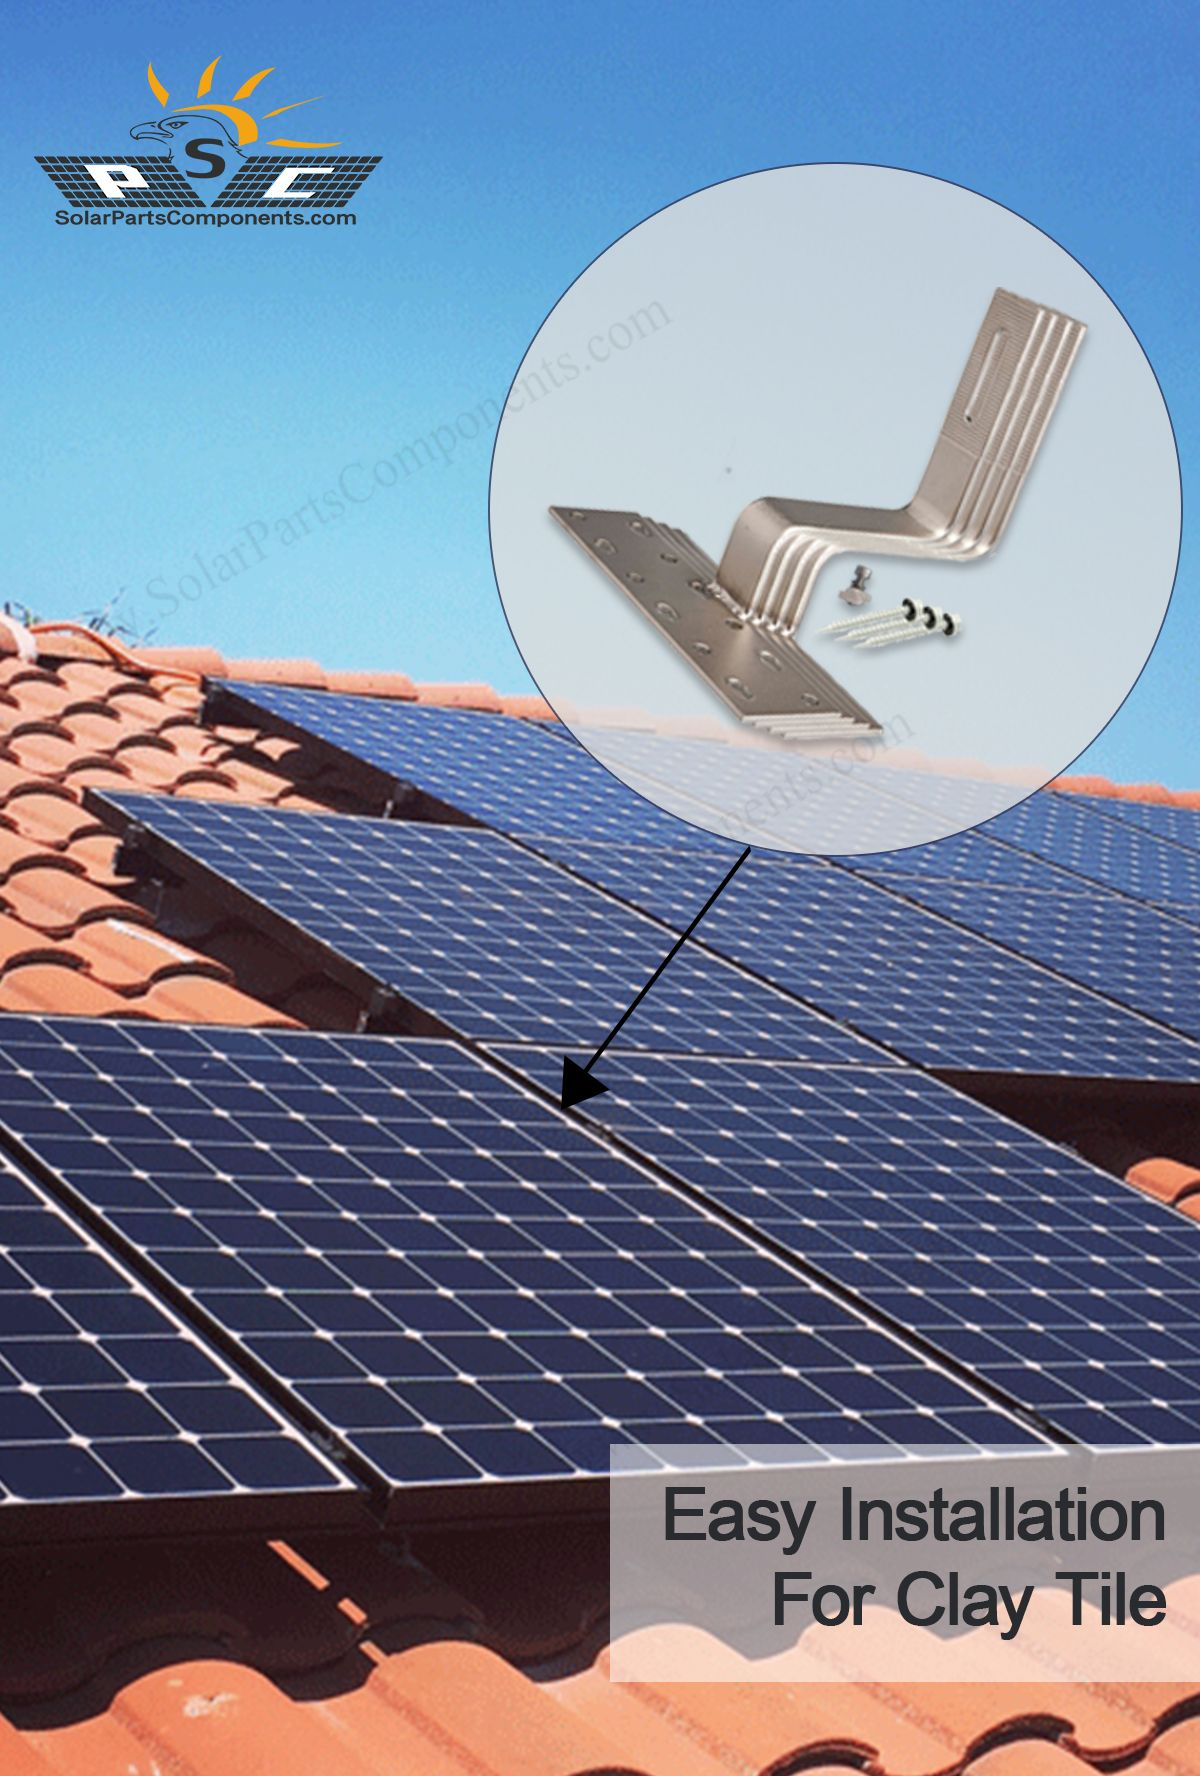 sus304 hook for solar clay tile mount